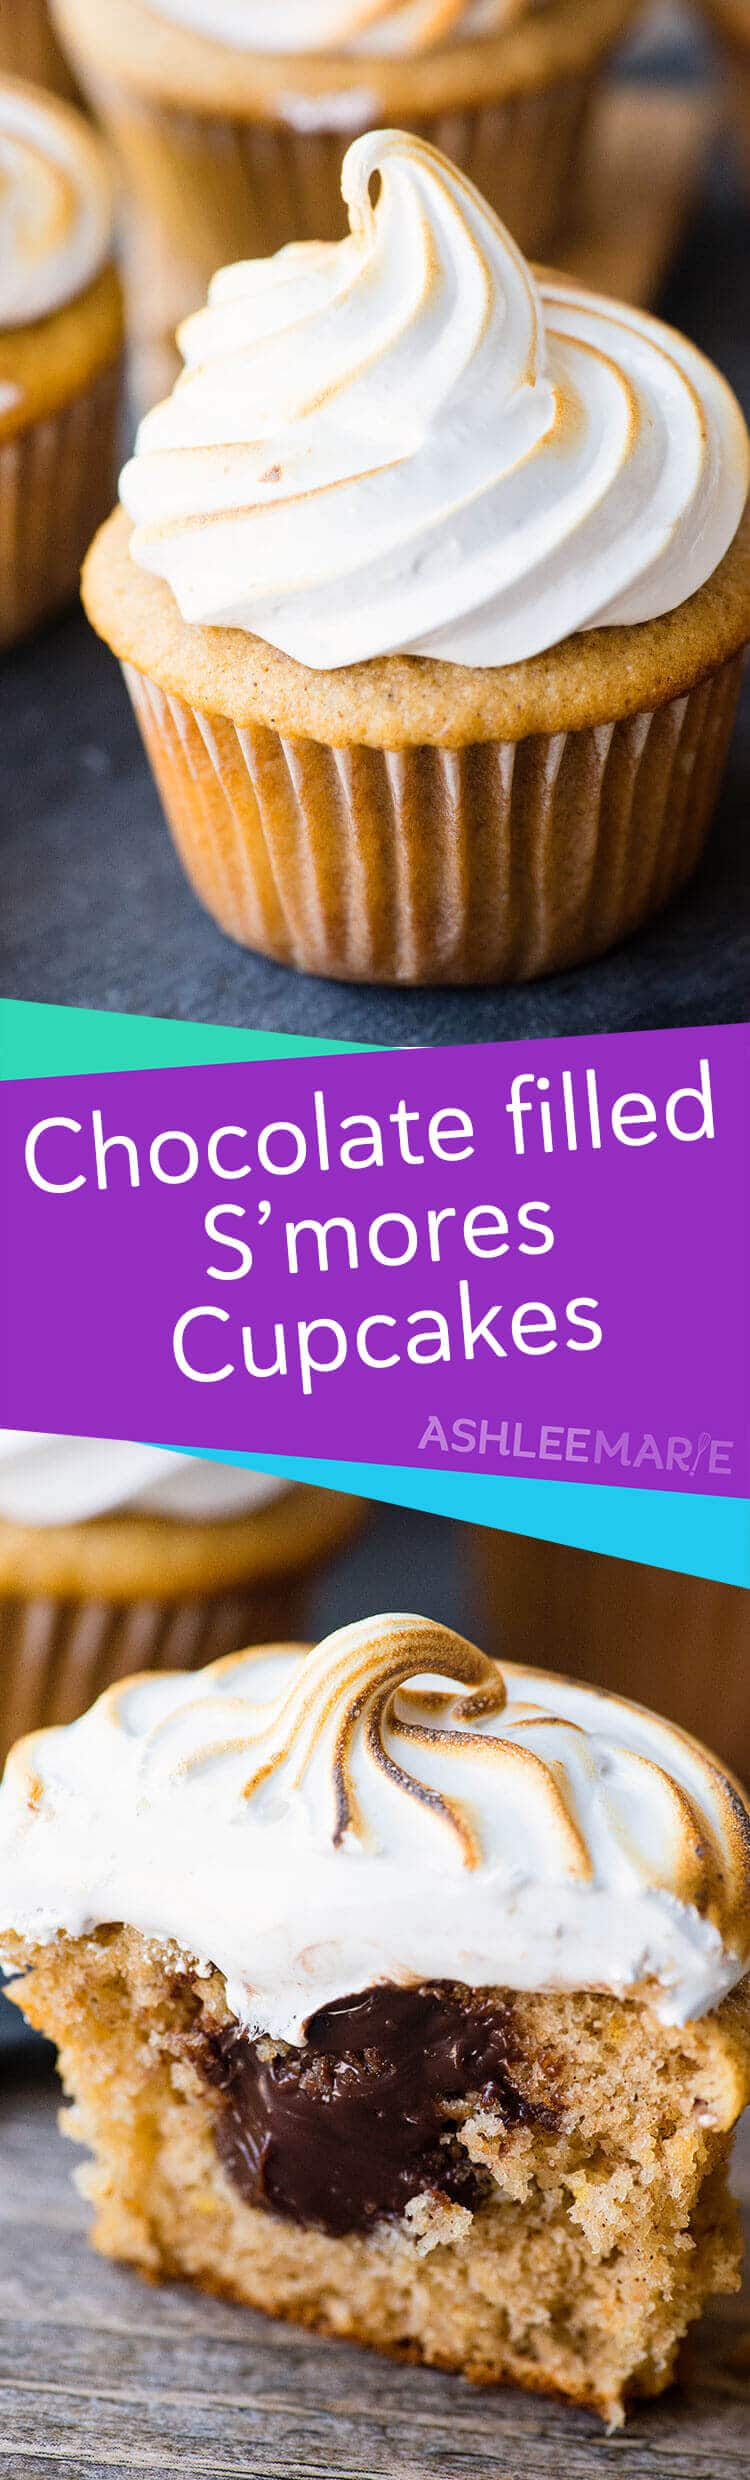 s'mores cupcake recipe - ganache filled graham cracker cupcakes with marshmallow frosting